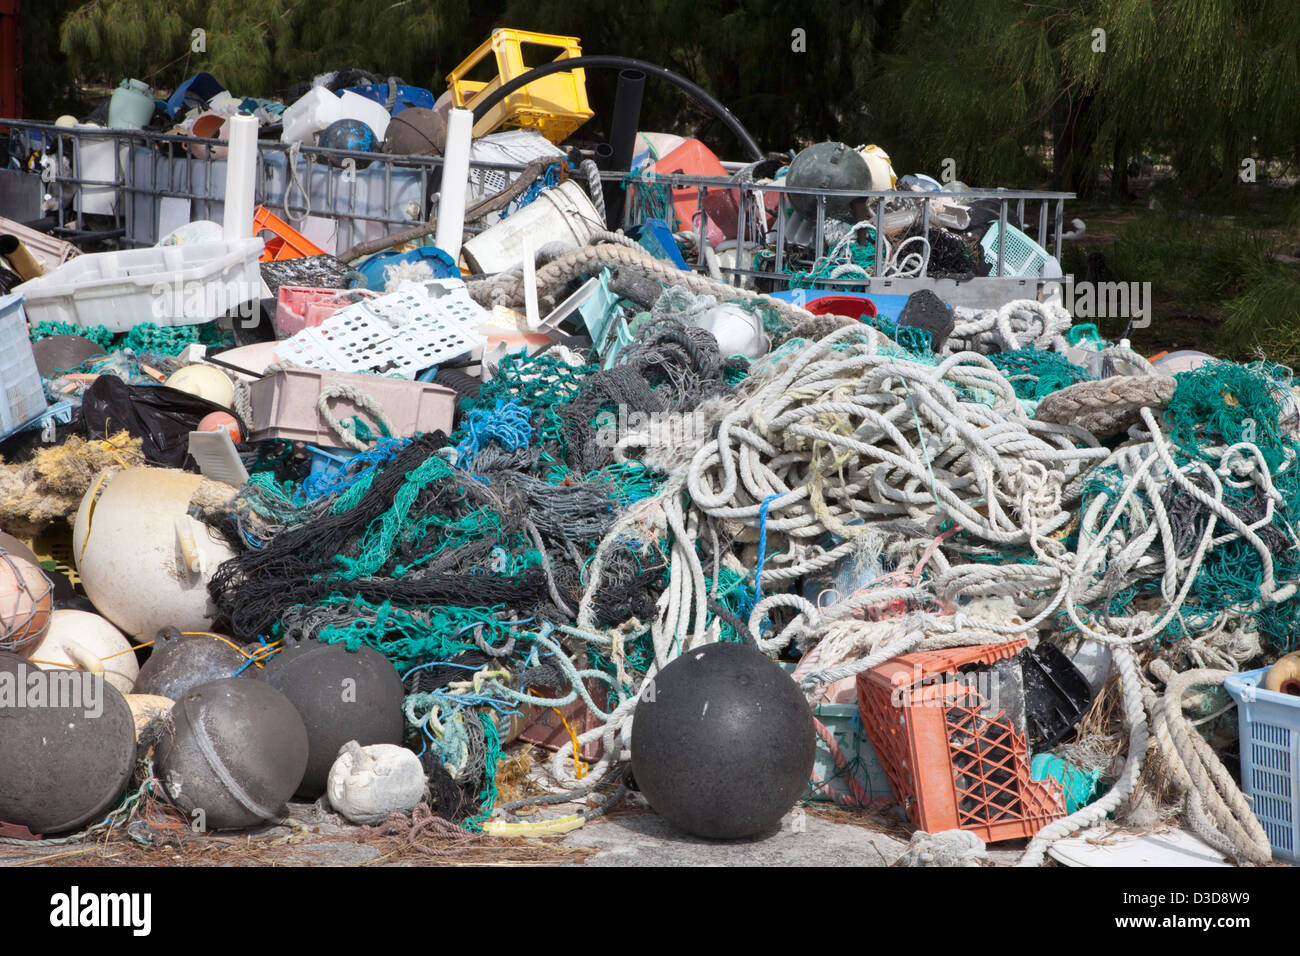 Marine debris that has washed ashore on Midway Atoll and was collected to be shipped off island for recycling or - Stock Image